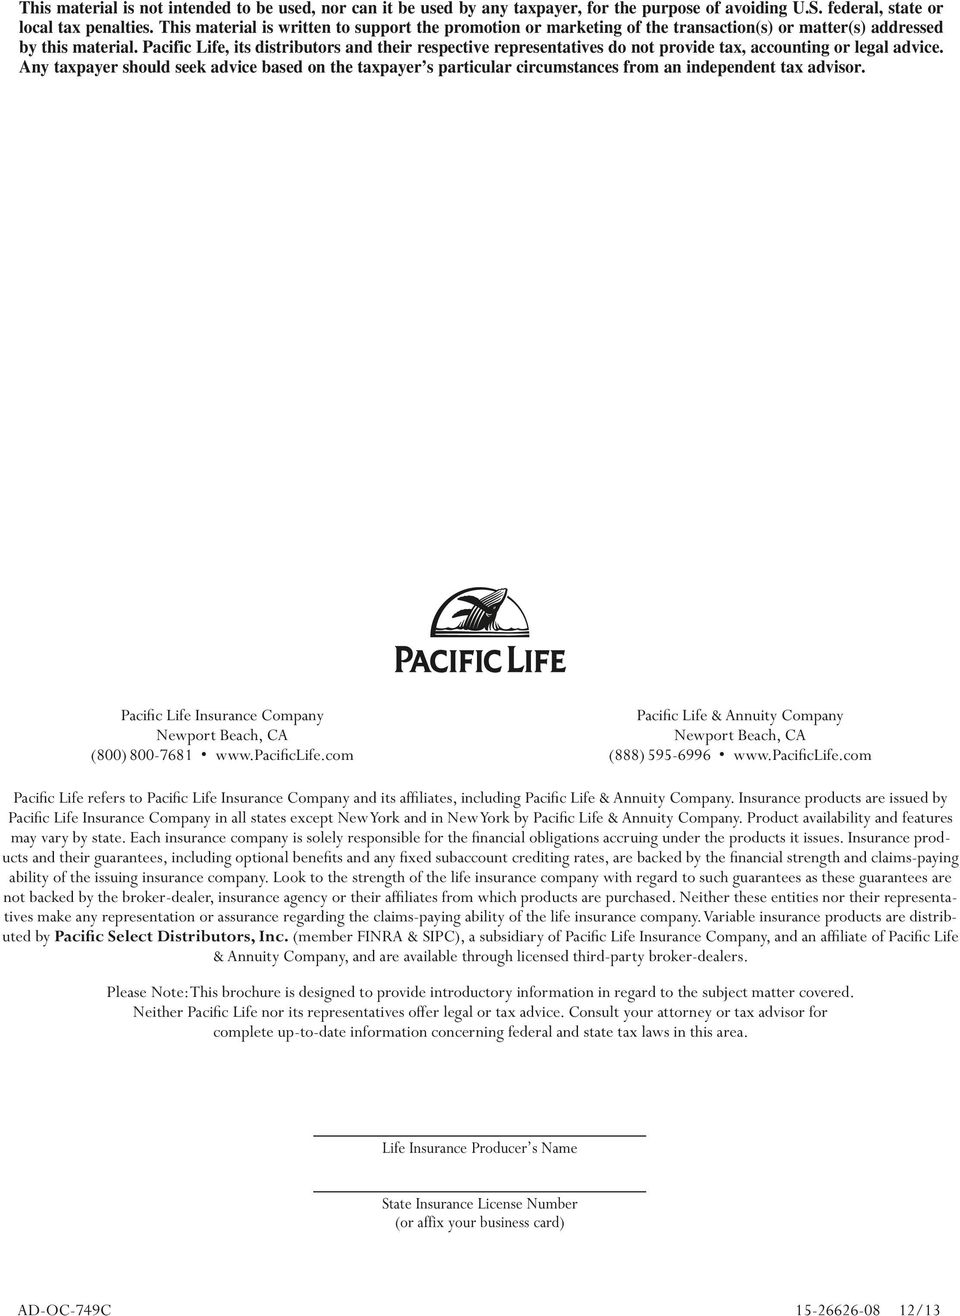 Pacific Life, its distributors and their respective representatives do not provide tax, accounting or legal advice.